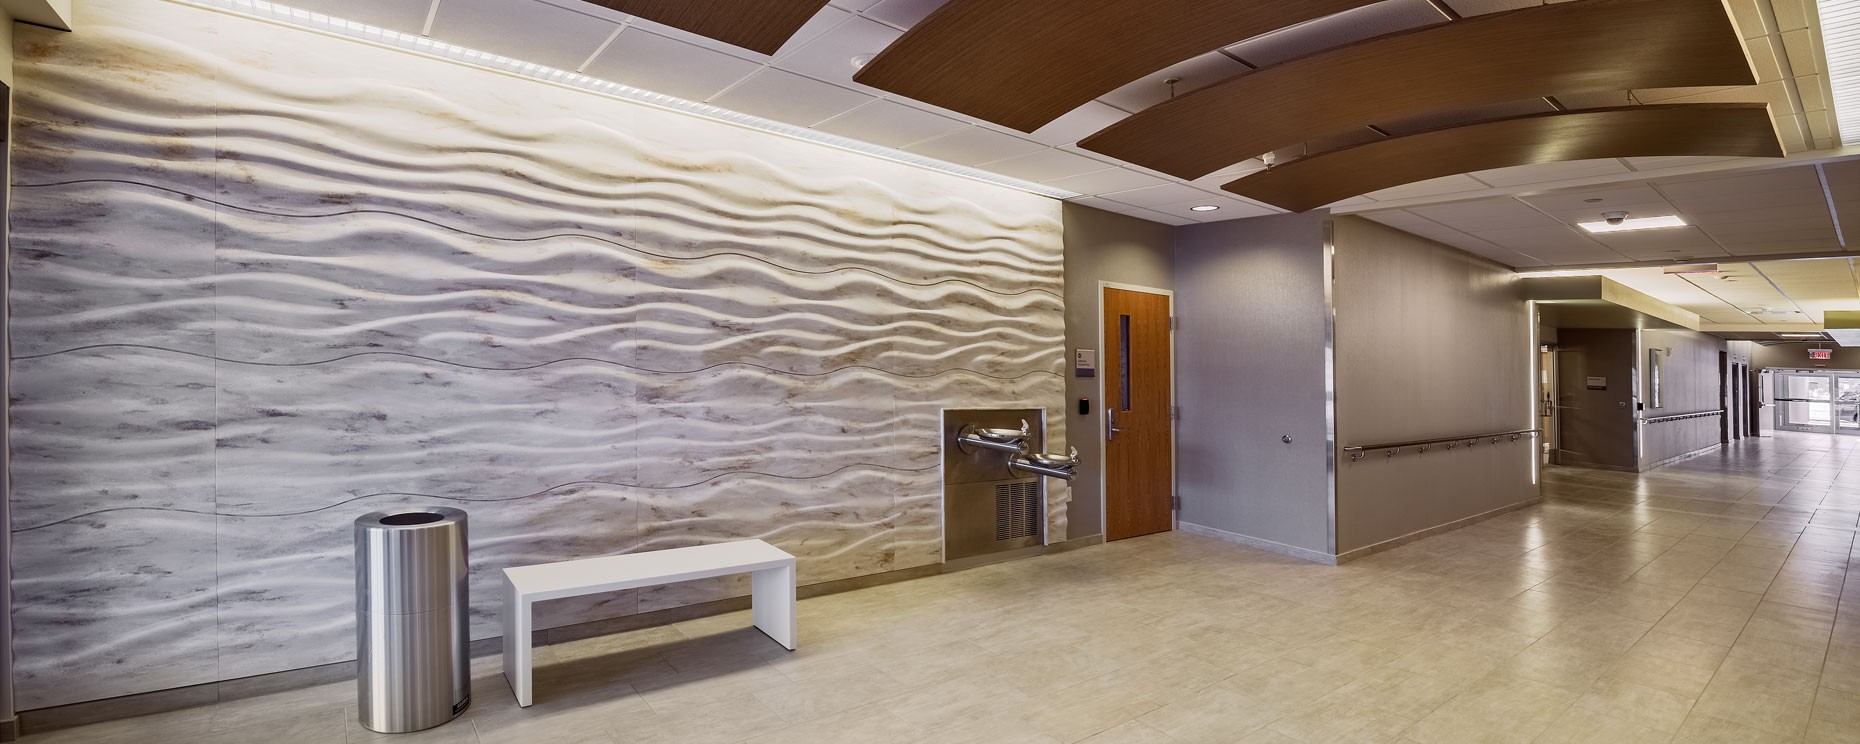 textured-wall-panels-in-health-care-facility